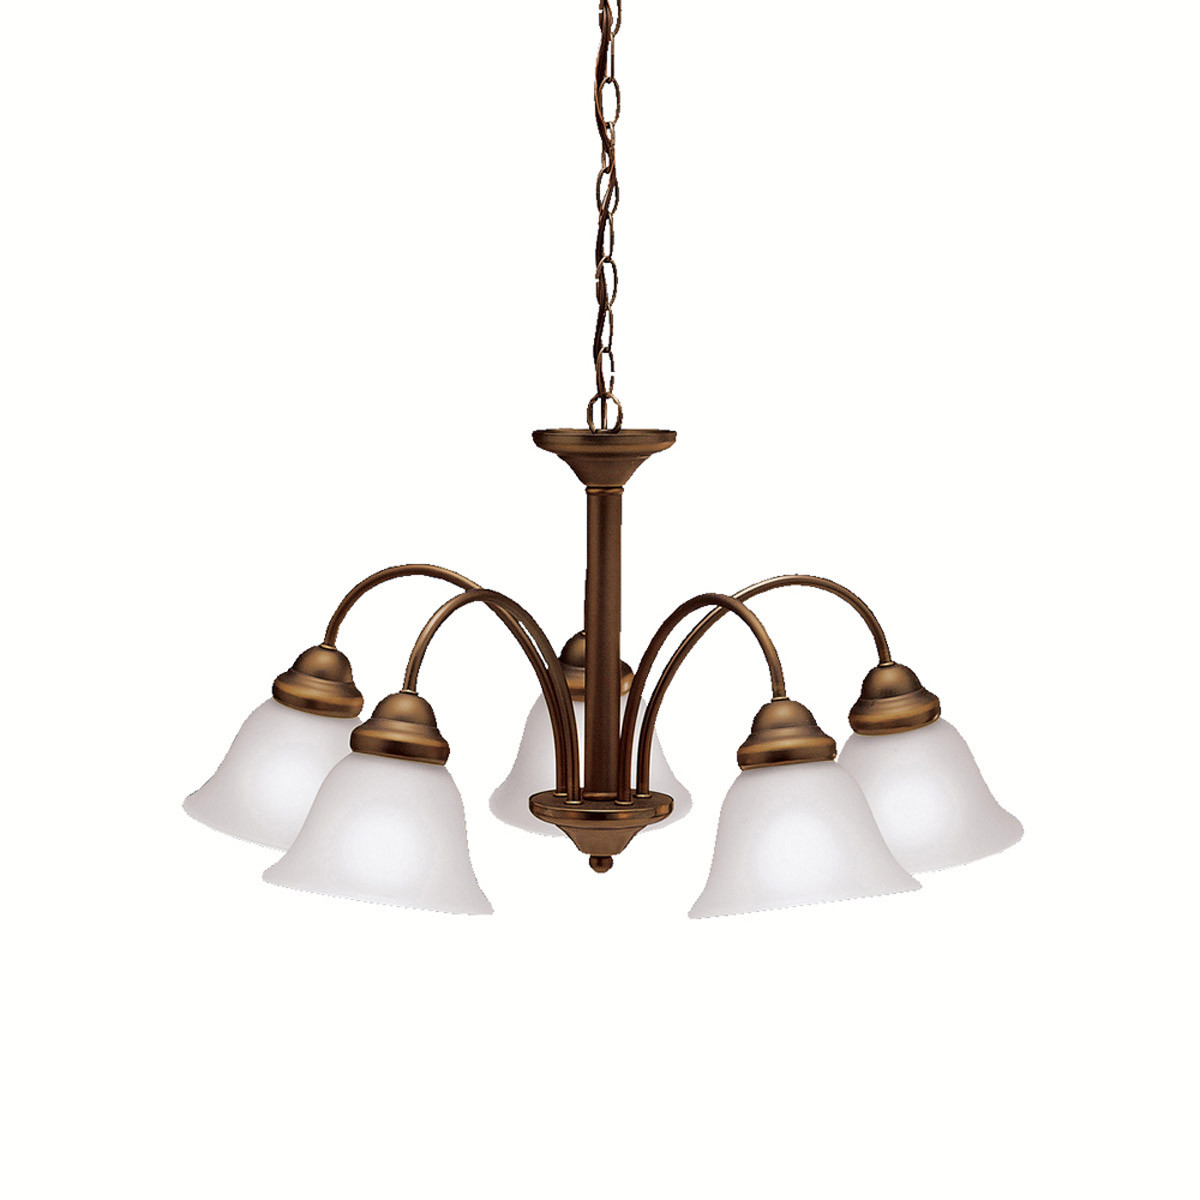 Kichler Lighting: Kichler Lighting Wynberg 5 Light Chandelier In Olde Bronze